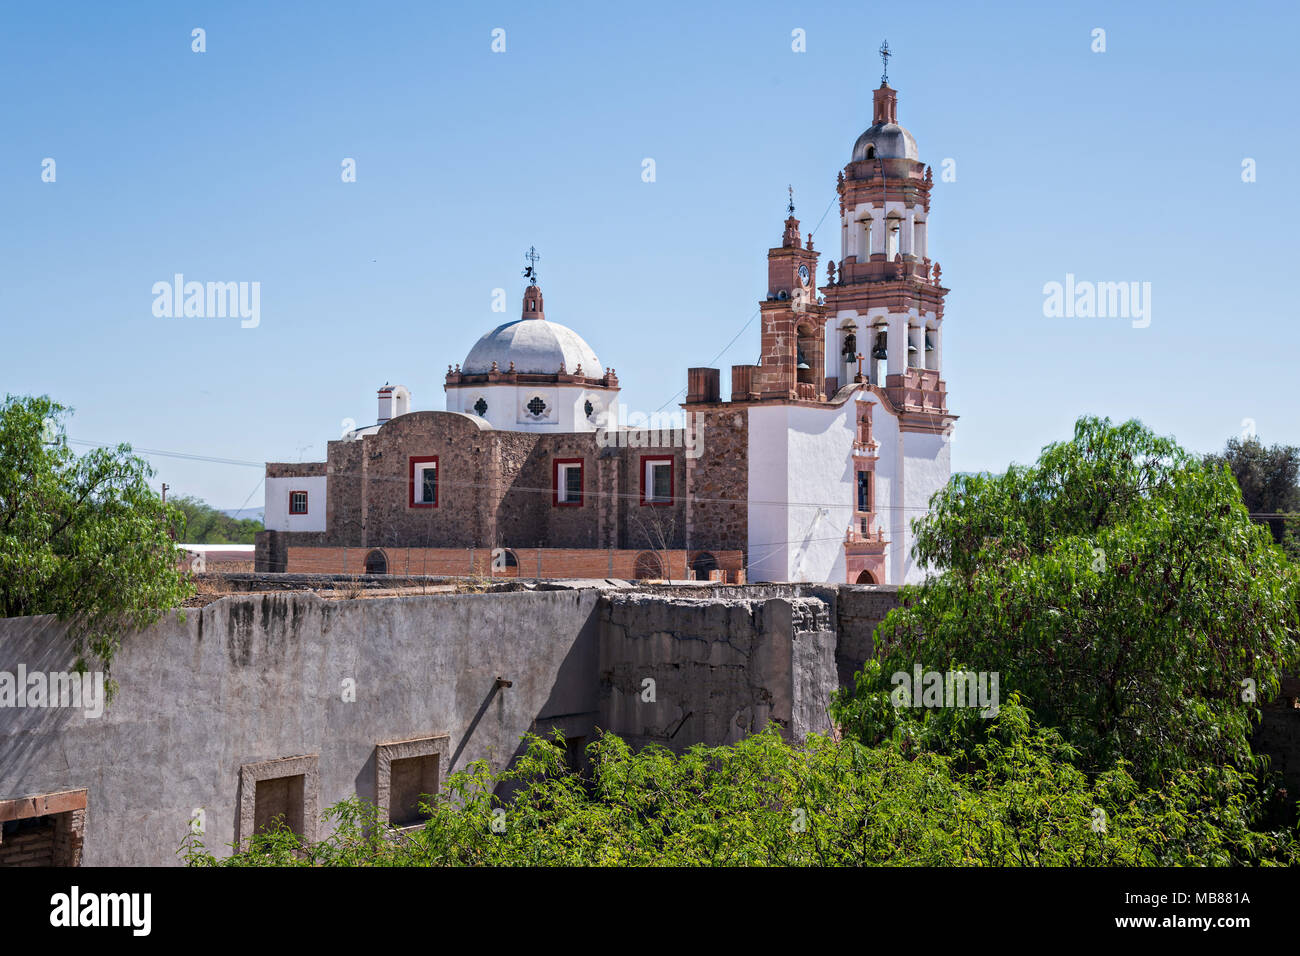 The Iglesia de San Diego De Alcalá as seen from the Hacienda de Jaral de Berrio in Jaral de Berrios, Guanajuato, Mexico. The abandoned Jaral de Berrio hacienda was once the largest in Mexico and housed over 6,000 people on the property. - Stock Image